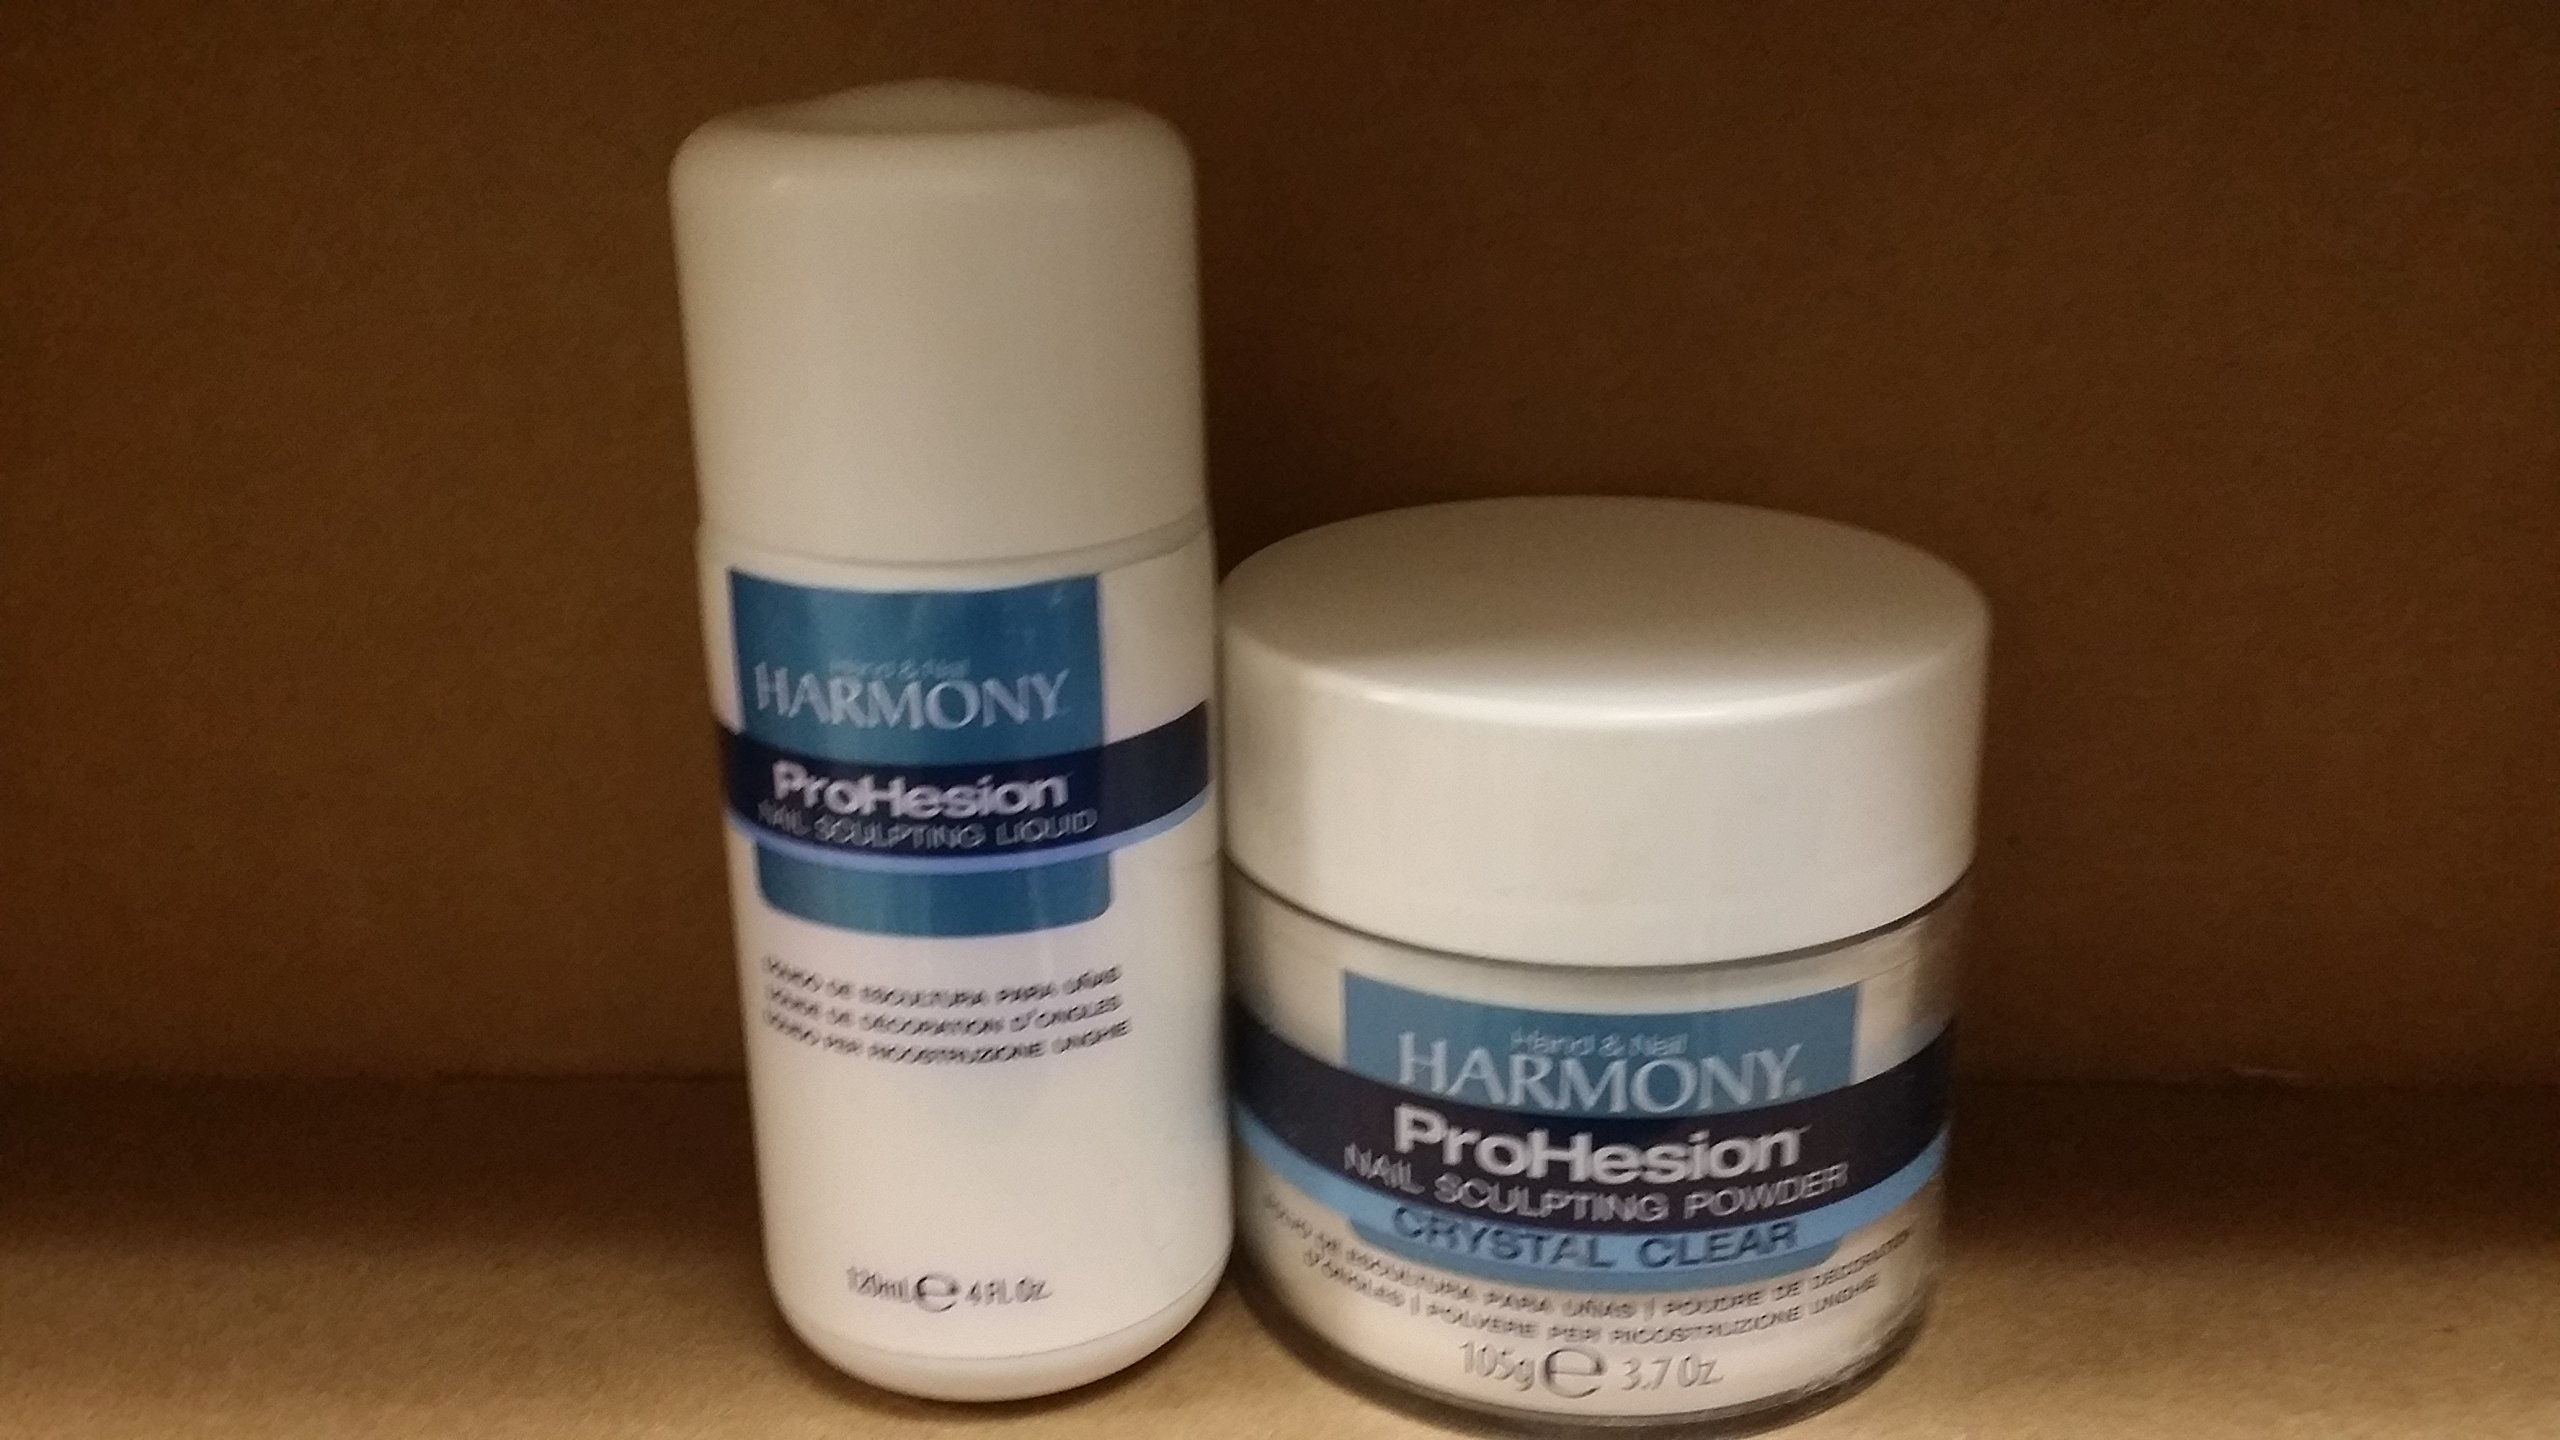 Harmony Prohesion Nail Sculpting Liquid 4 oz & Powder - CRYSTAL CLEAR 3.7 oz DUO